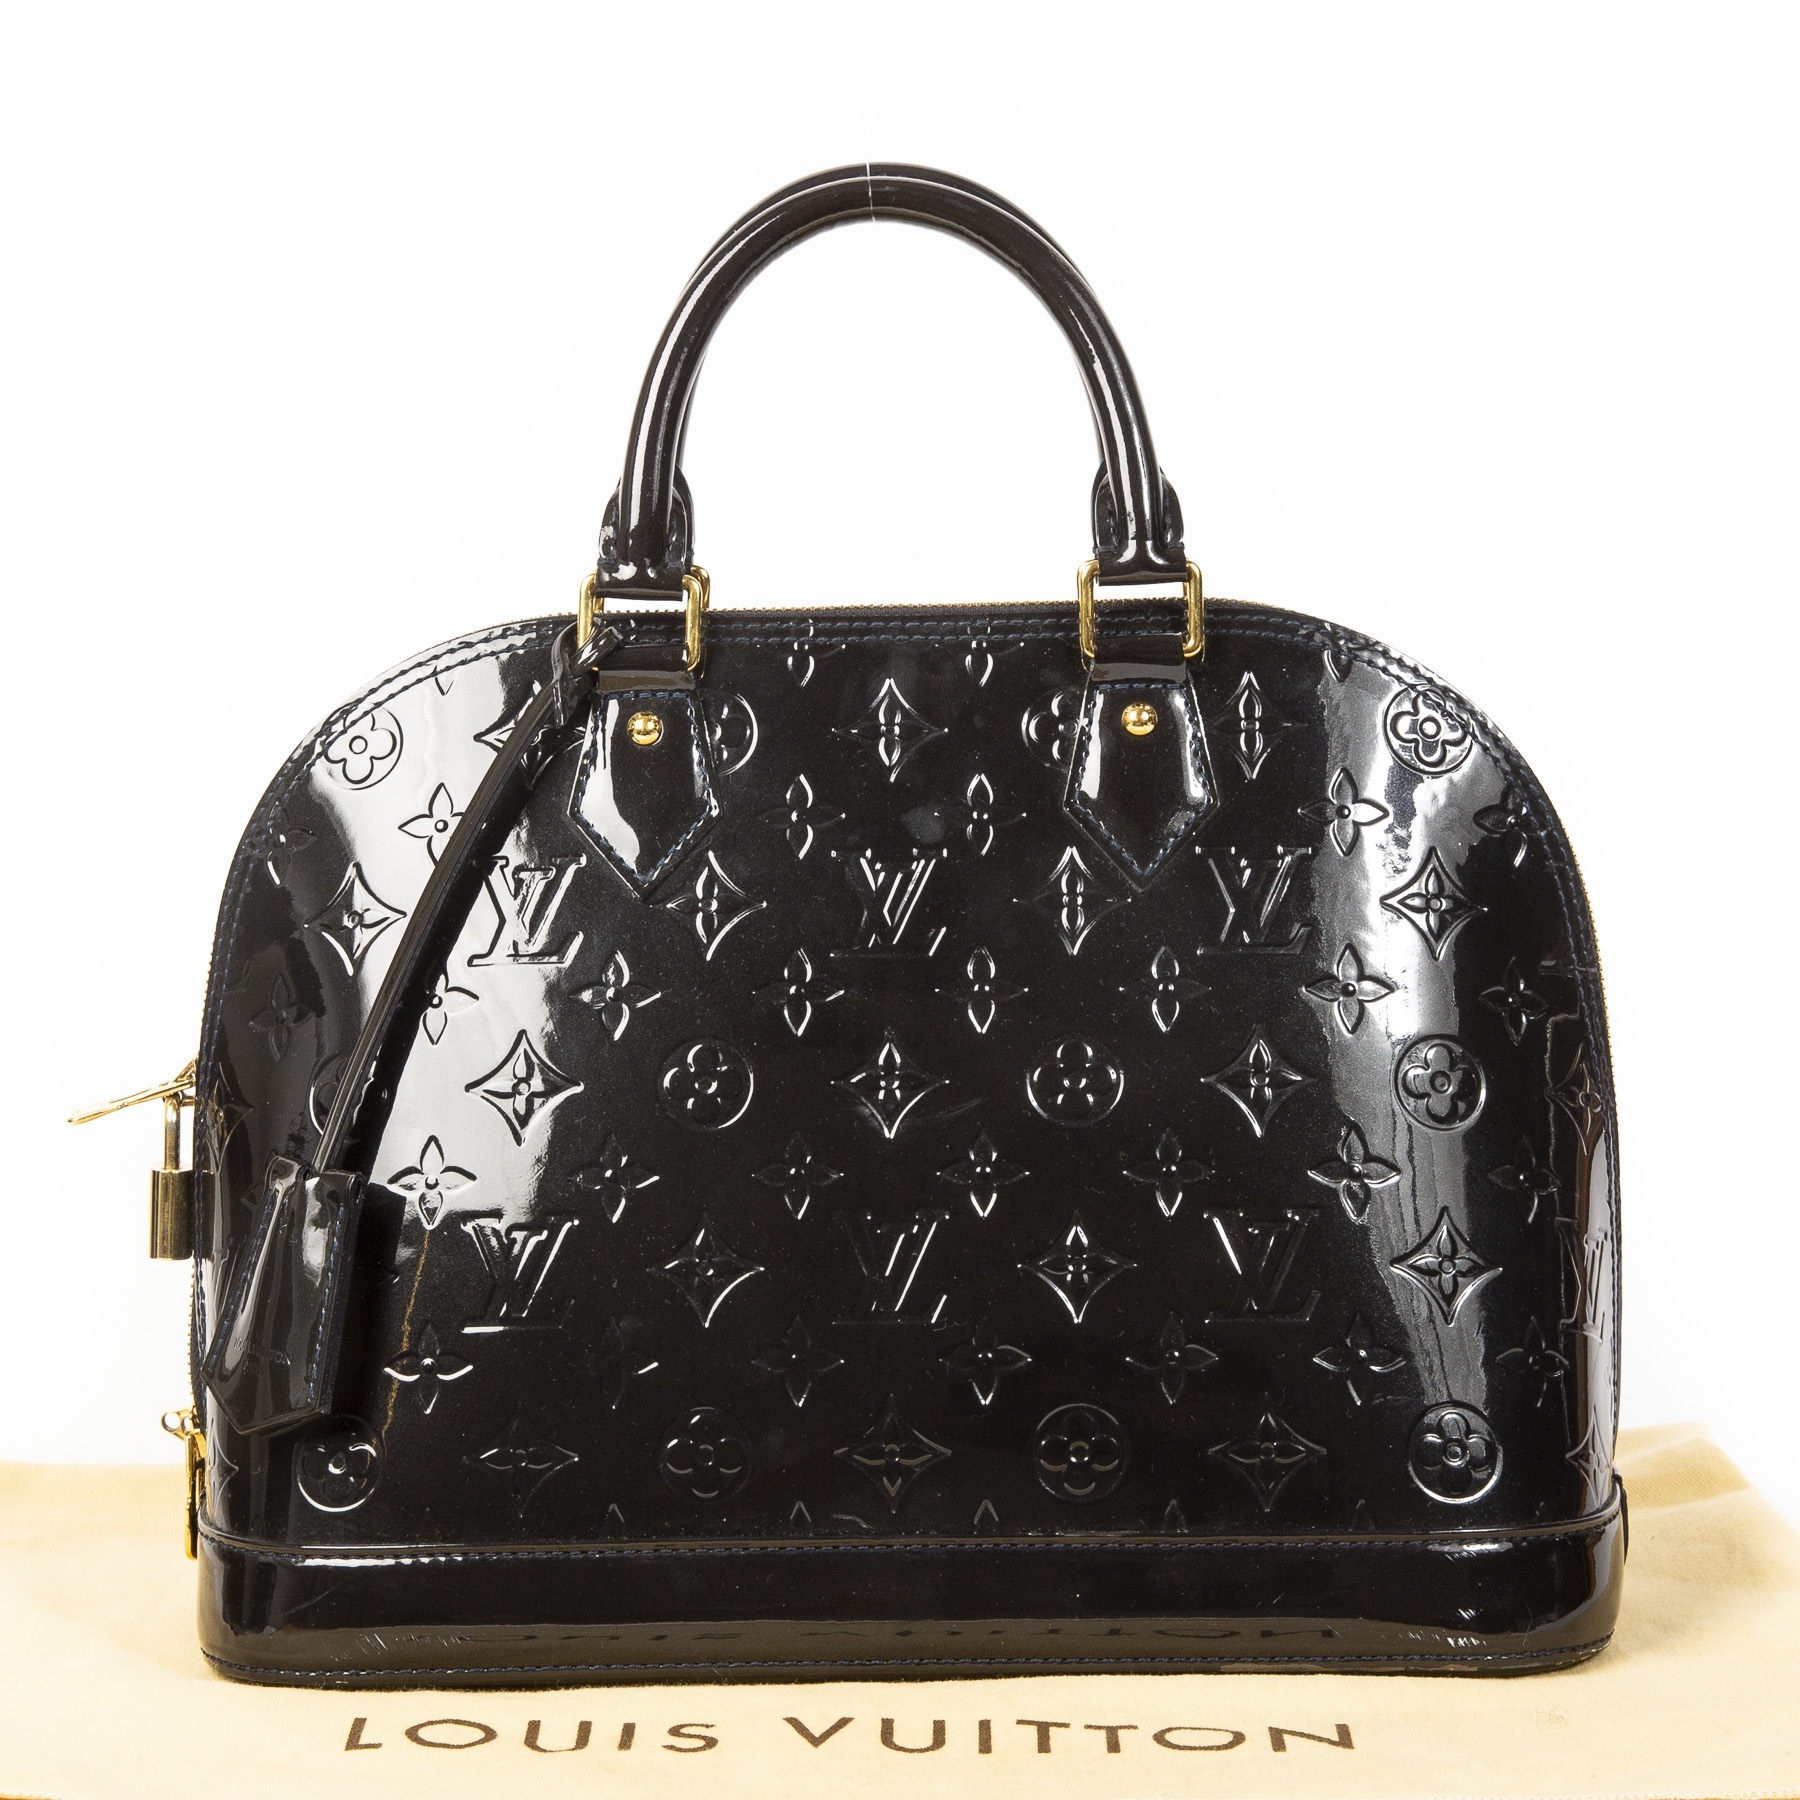 Louis Vuitton Dark Blue Vernis Alma PM Bag Louis Vuitton Dark Blue Vernis Alma PM Bag